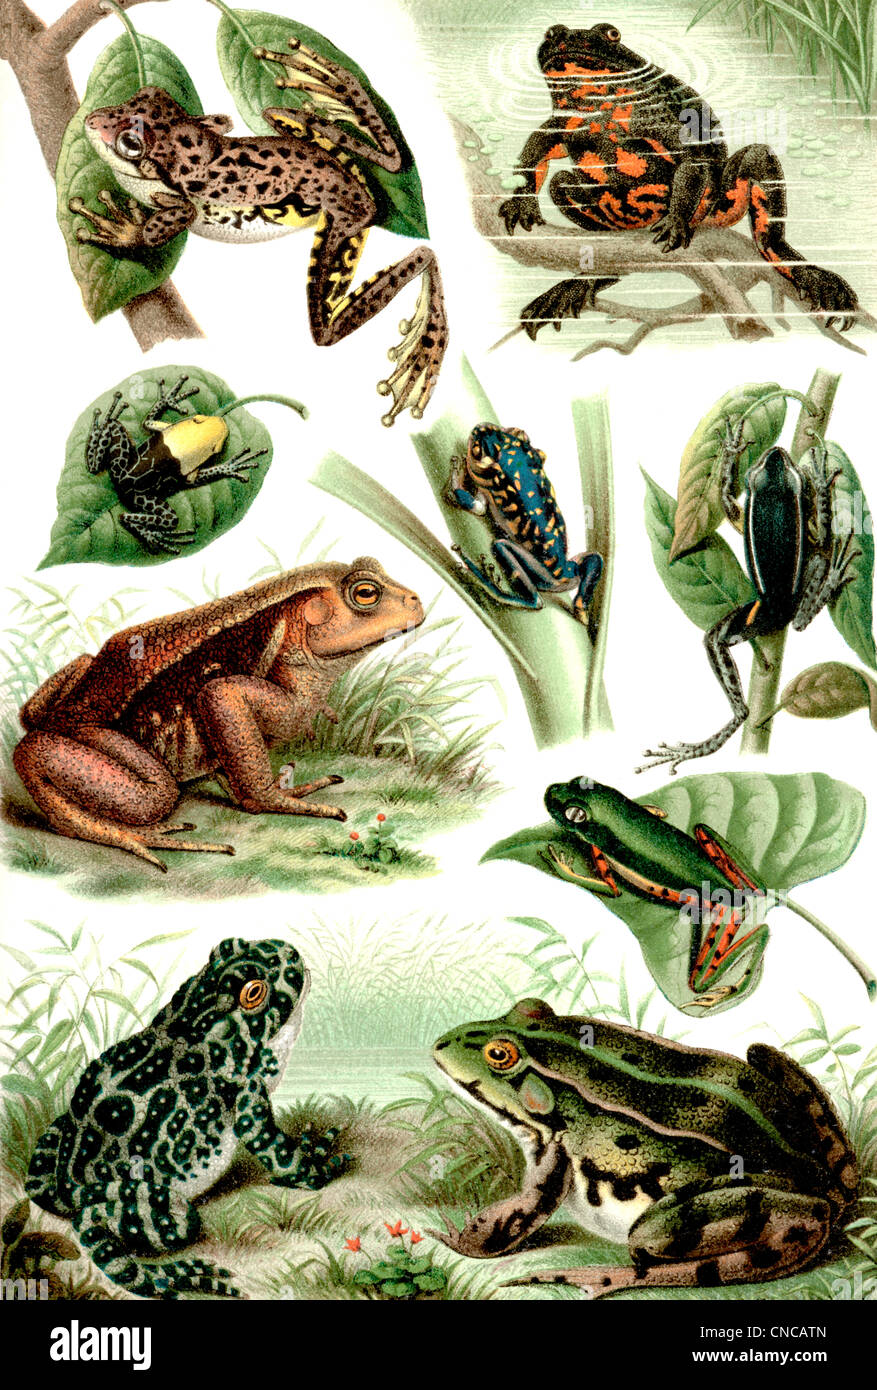 Historical illustration from the 19th Century, depiction of frogs and toads - Stock Image